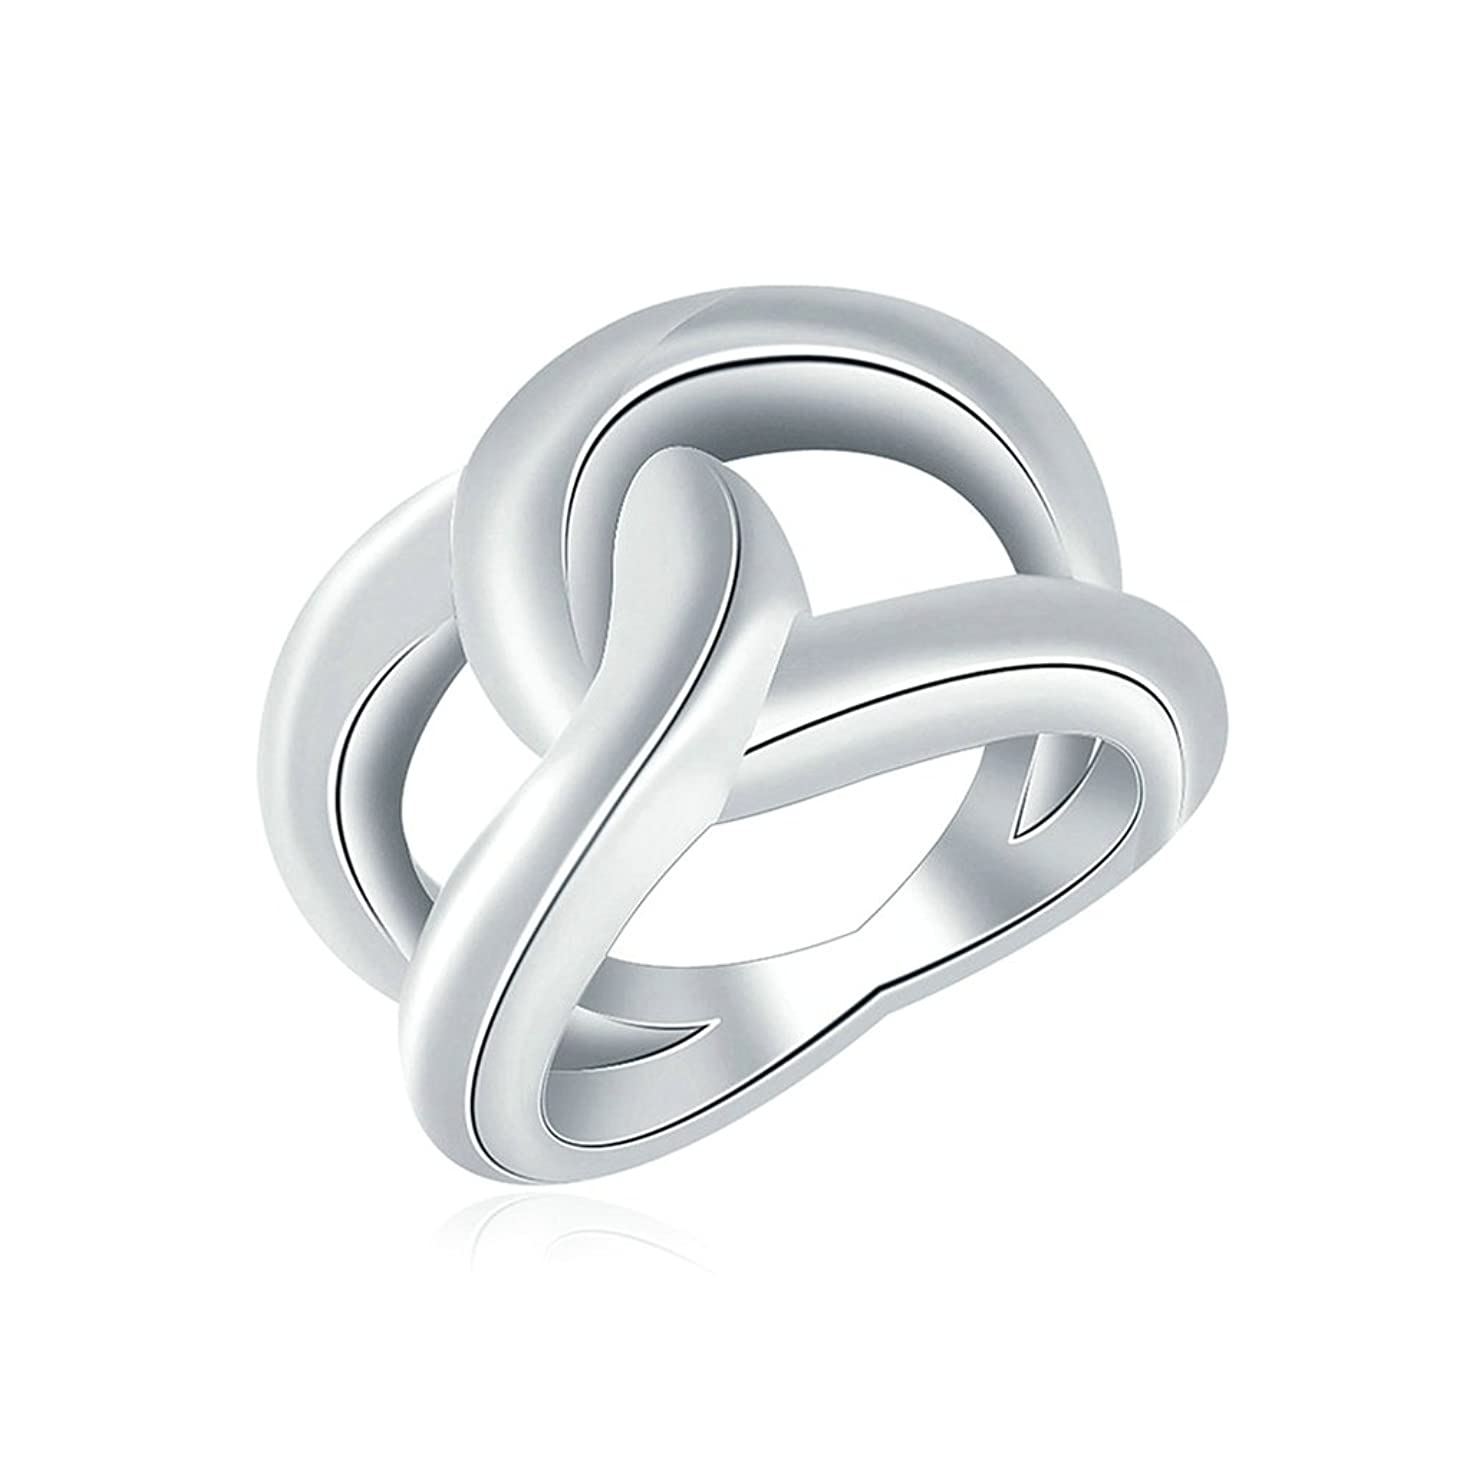 Gnzoe Jewelry,Silver Plated Simple Cross Circle Twist Shape Engagement Rings for Women